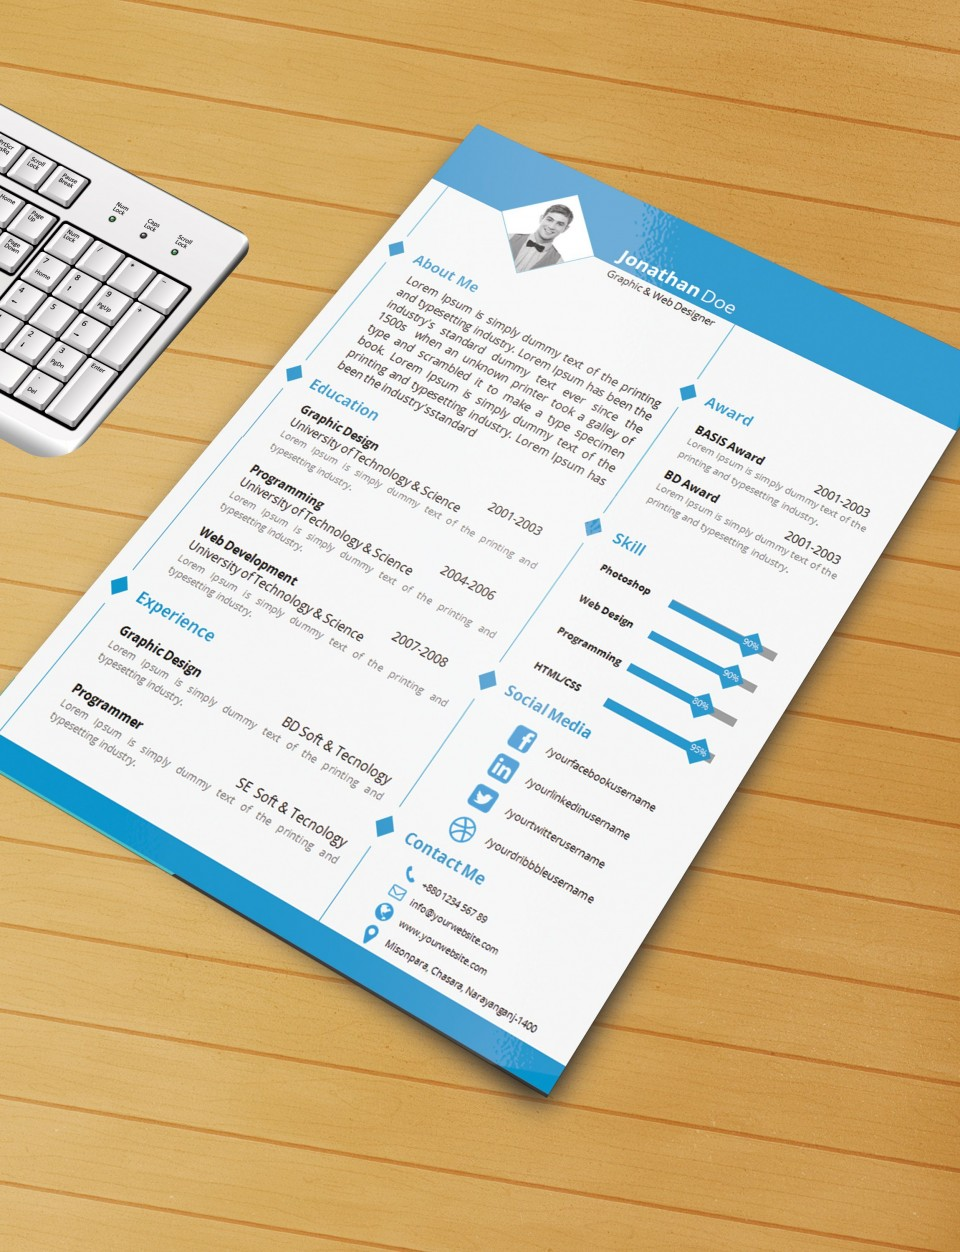 004 Outstanding Microsoft Word Template Download High Definition  2010 Resume Free 2007 Error Invoice960